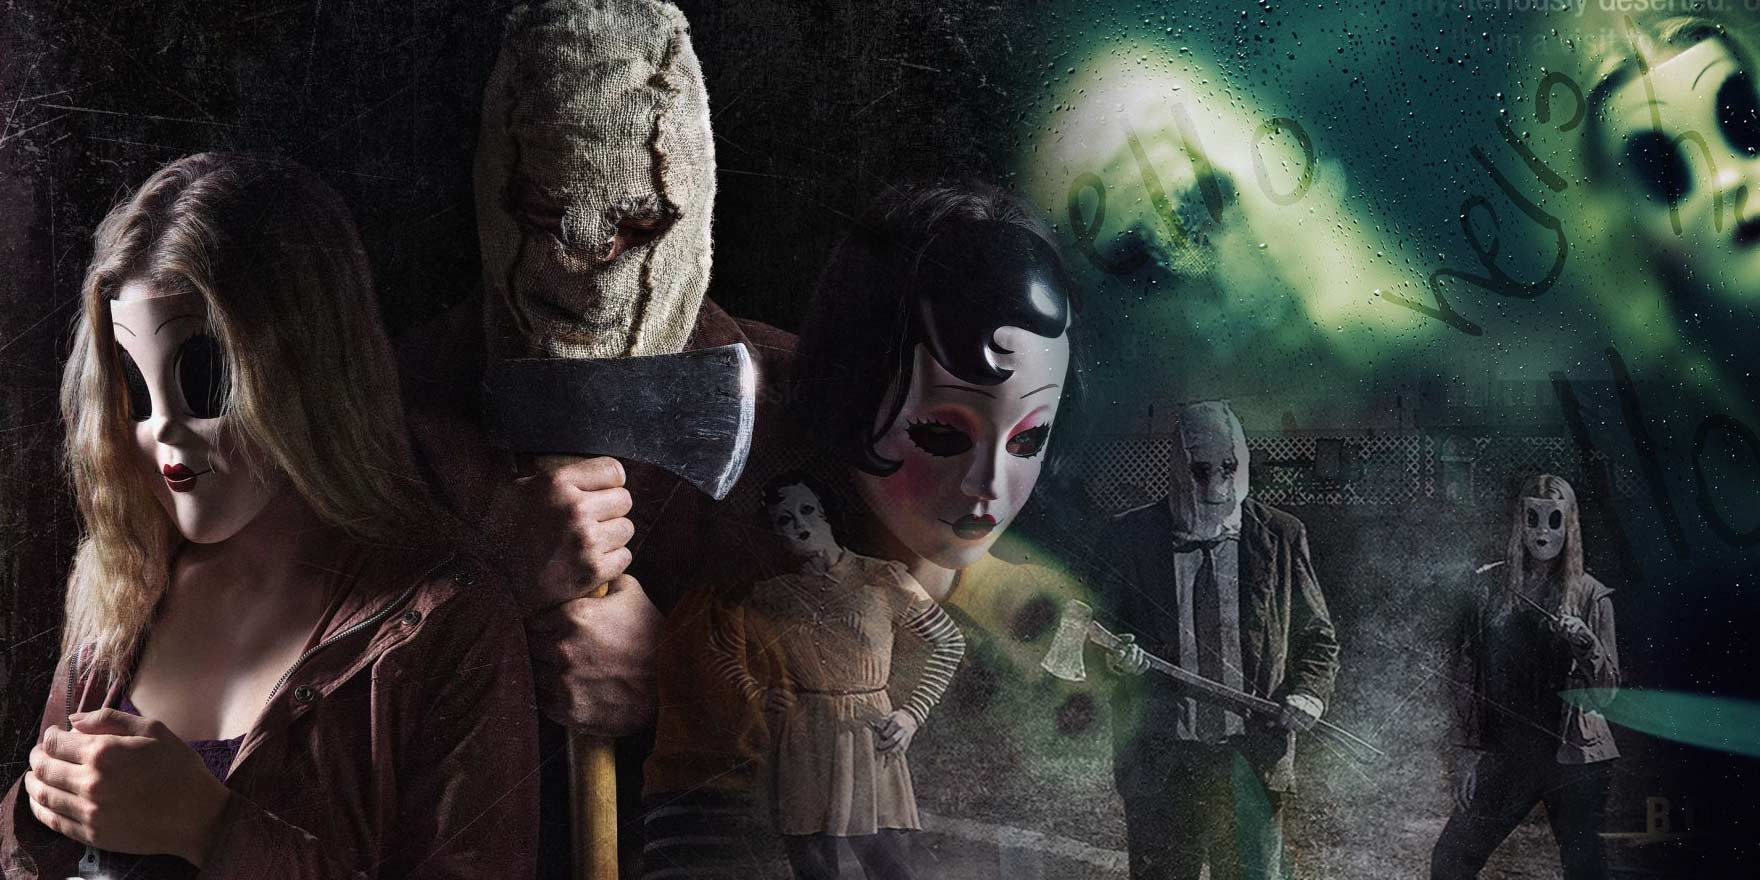 The Strangers: Prey at Night - Header Image